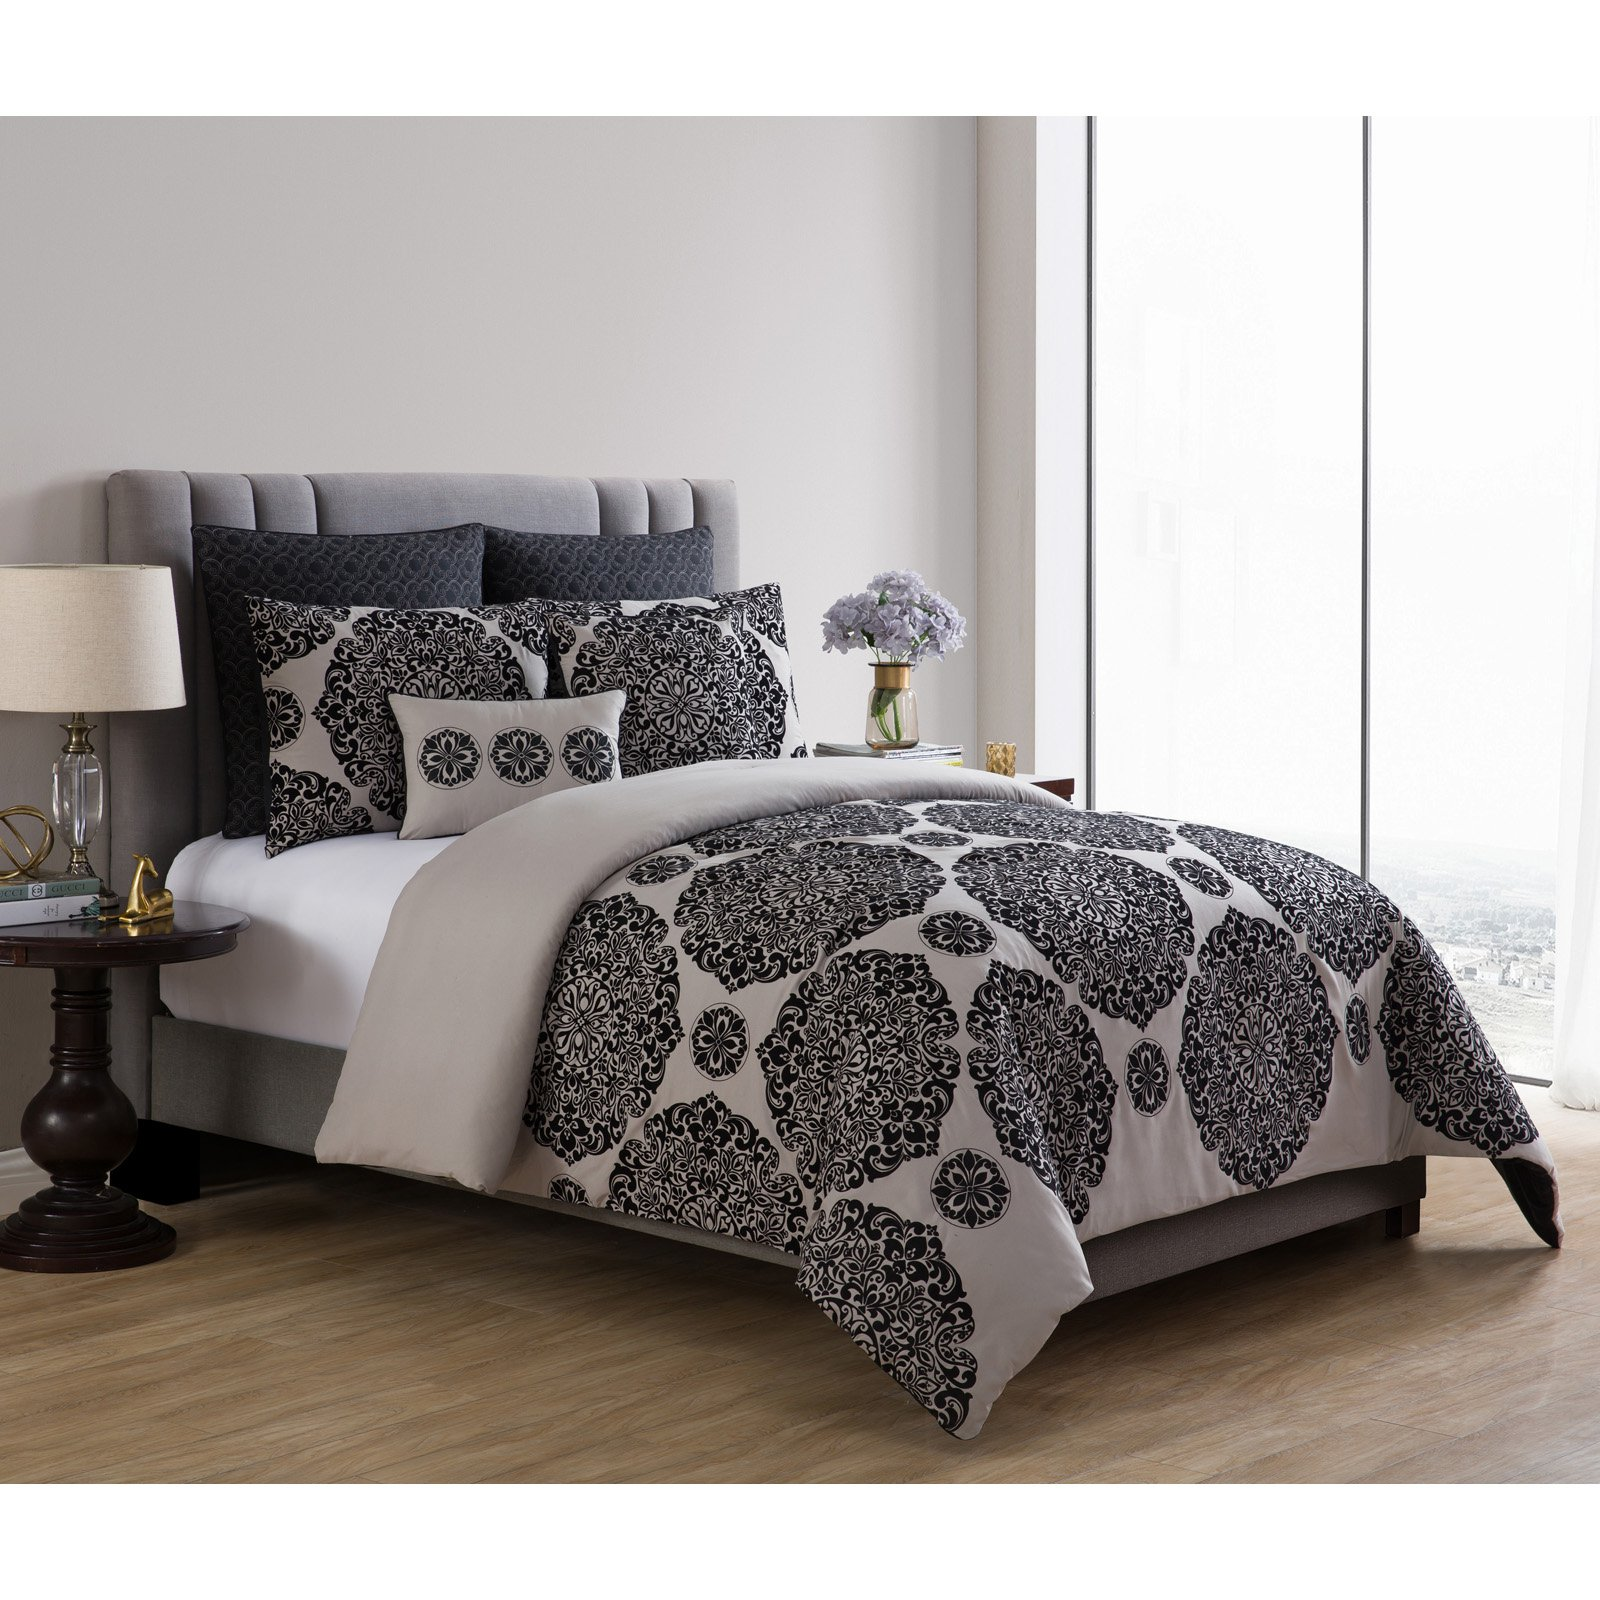 VCNY Home Tayden Flocked Medallion 7 Piece Comforter Bedding Set, Euro Shams Included